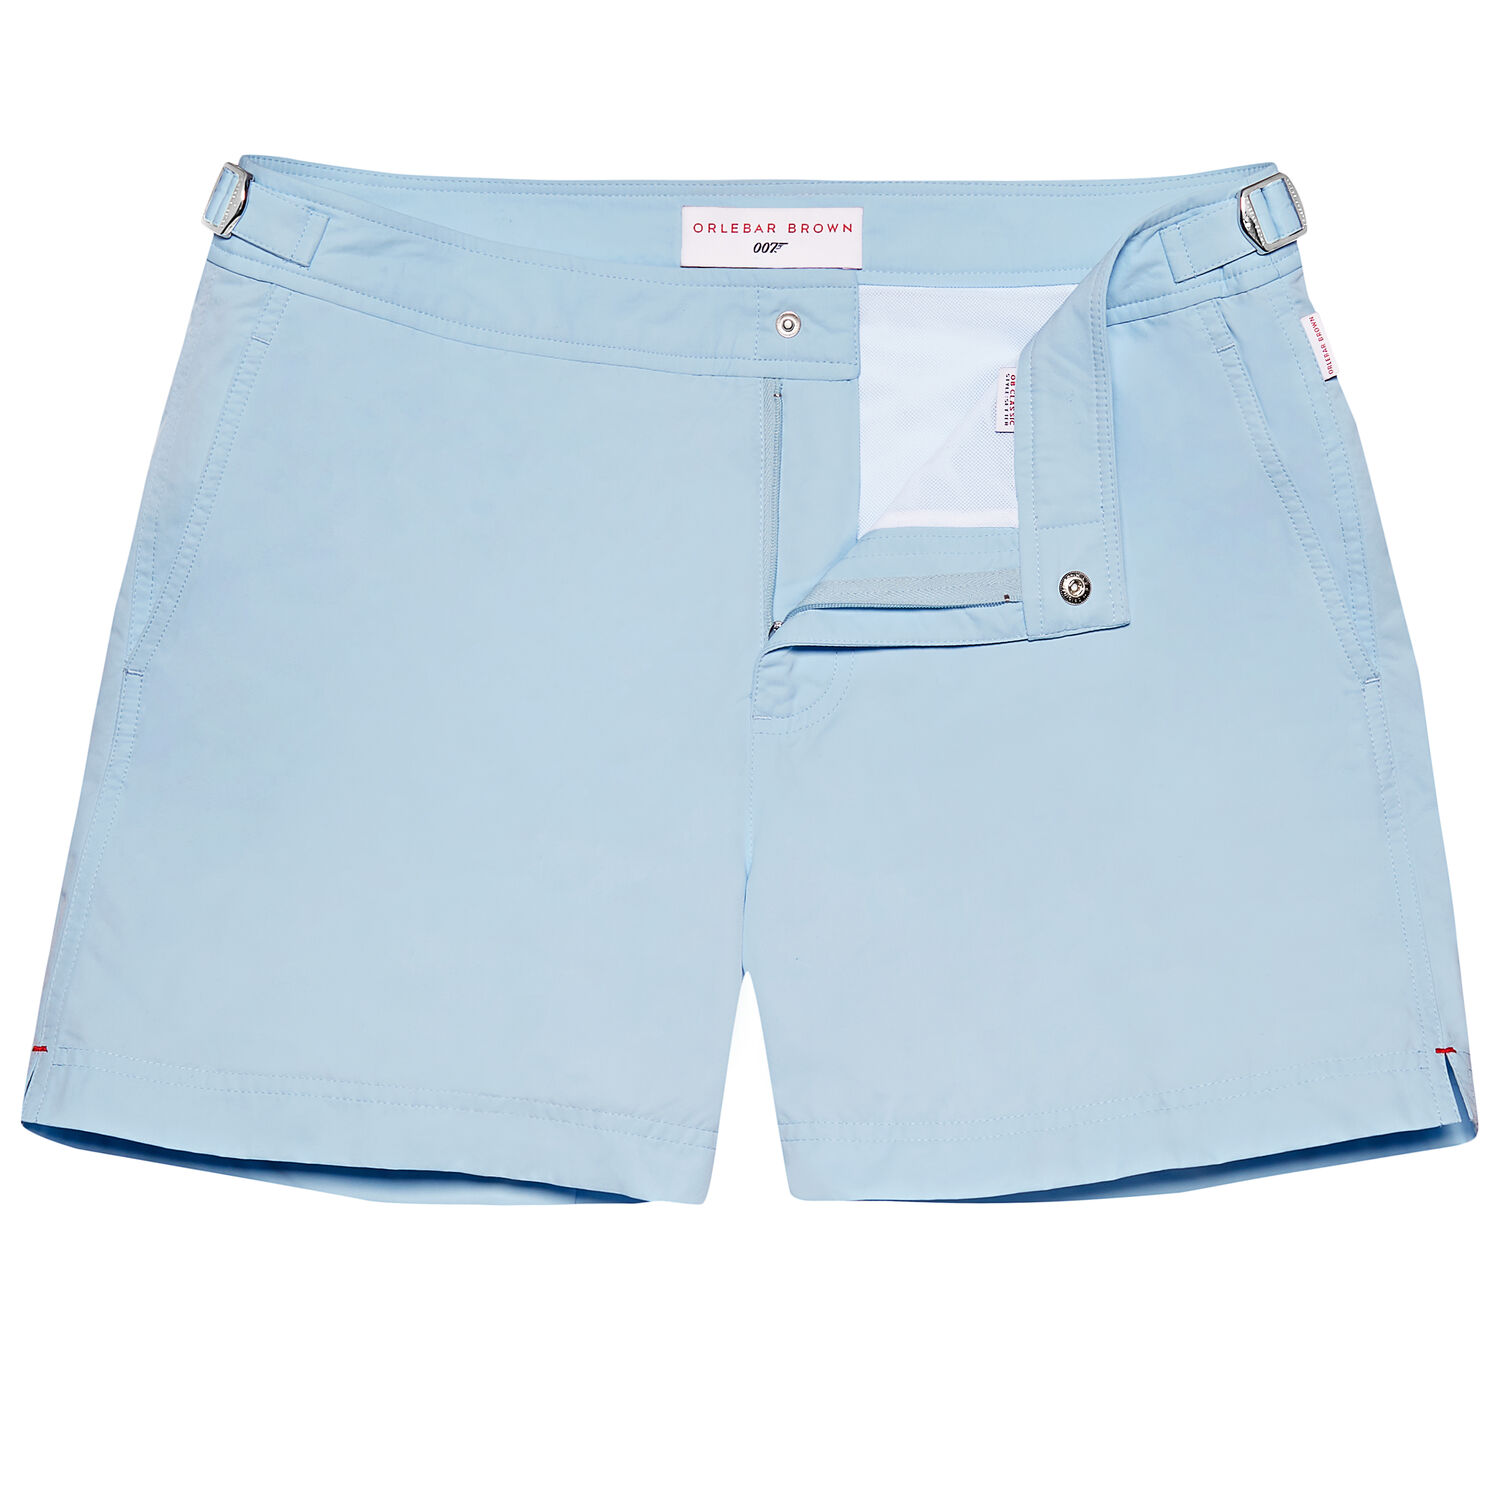 Orlebar Brown - Skyfall Setter in 007 Sky Blue / $295.00Who wouldn't want to be wearing the same shorts Daniel Craig sported in Skyfall? Love the cool adjustable sides and seamless front closure.